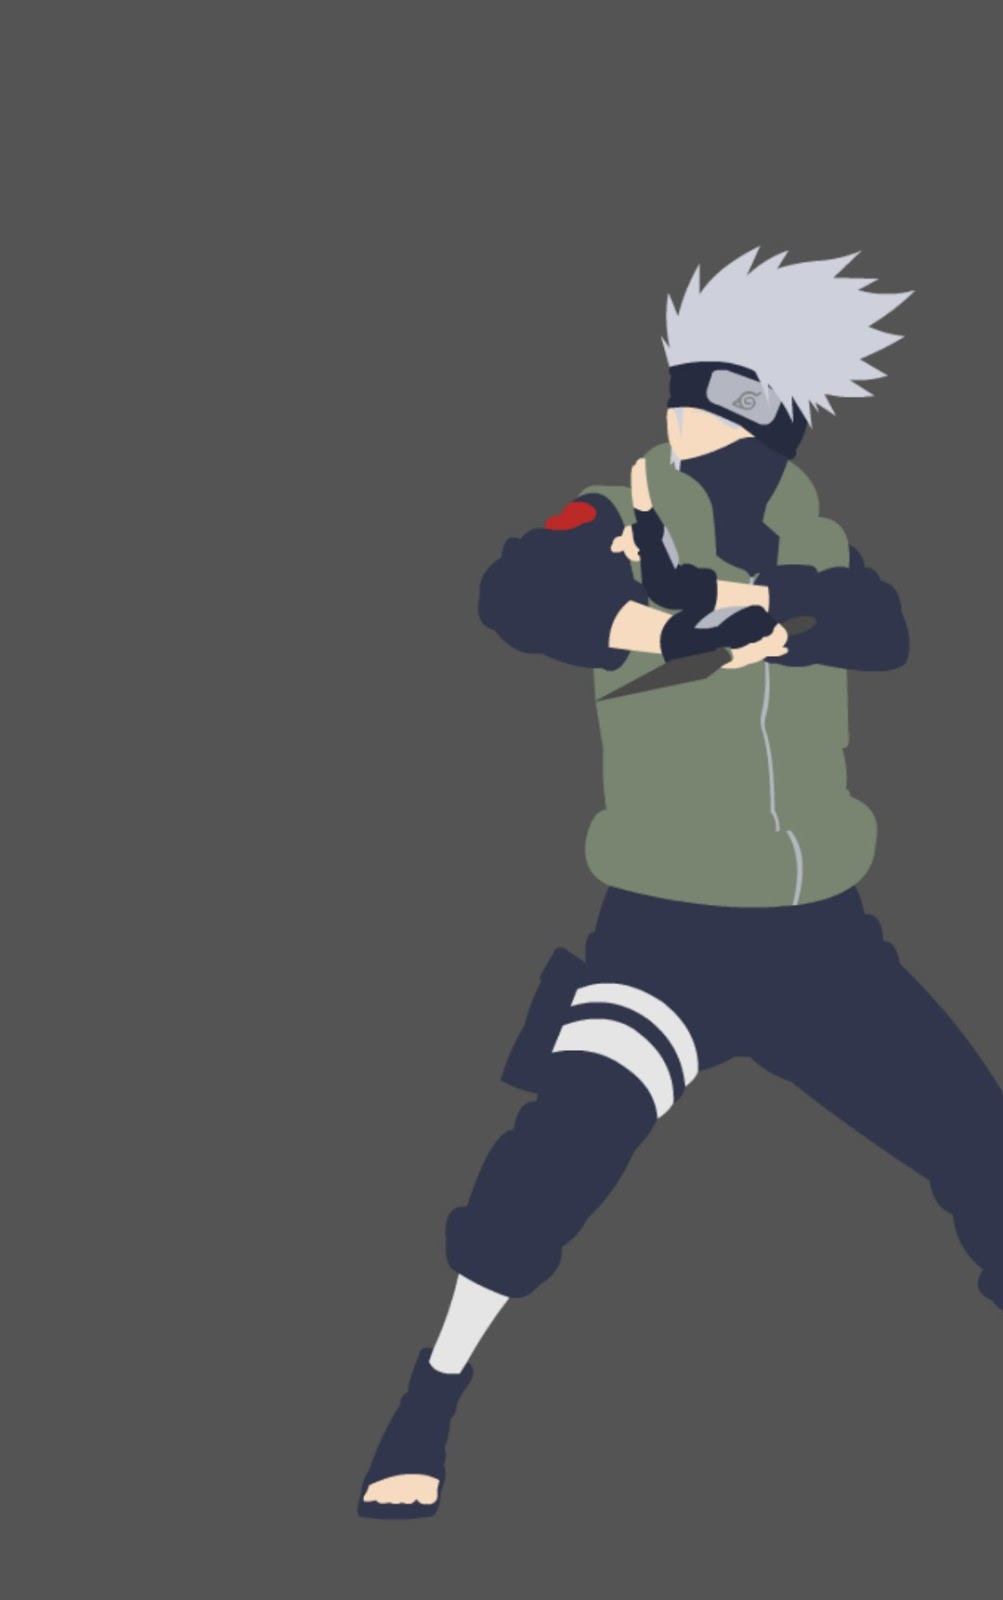 2 Download Wallpaper hatake kakashi vector untuk Android dan Whatsapp